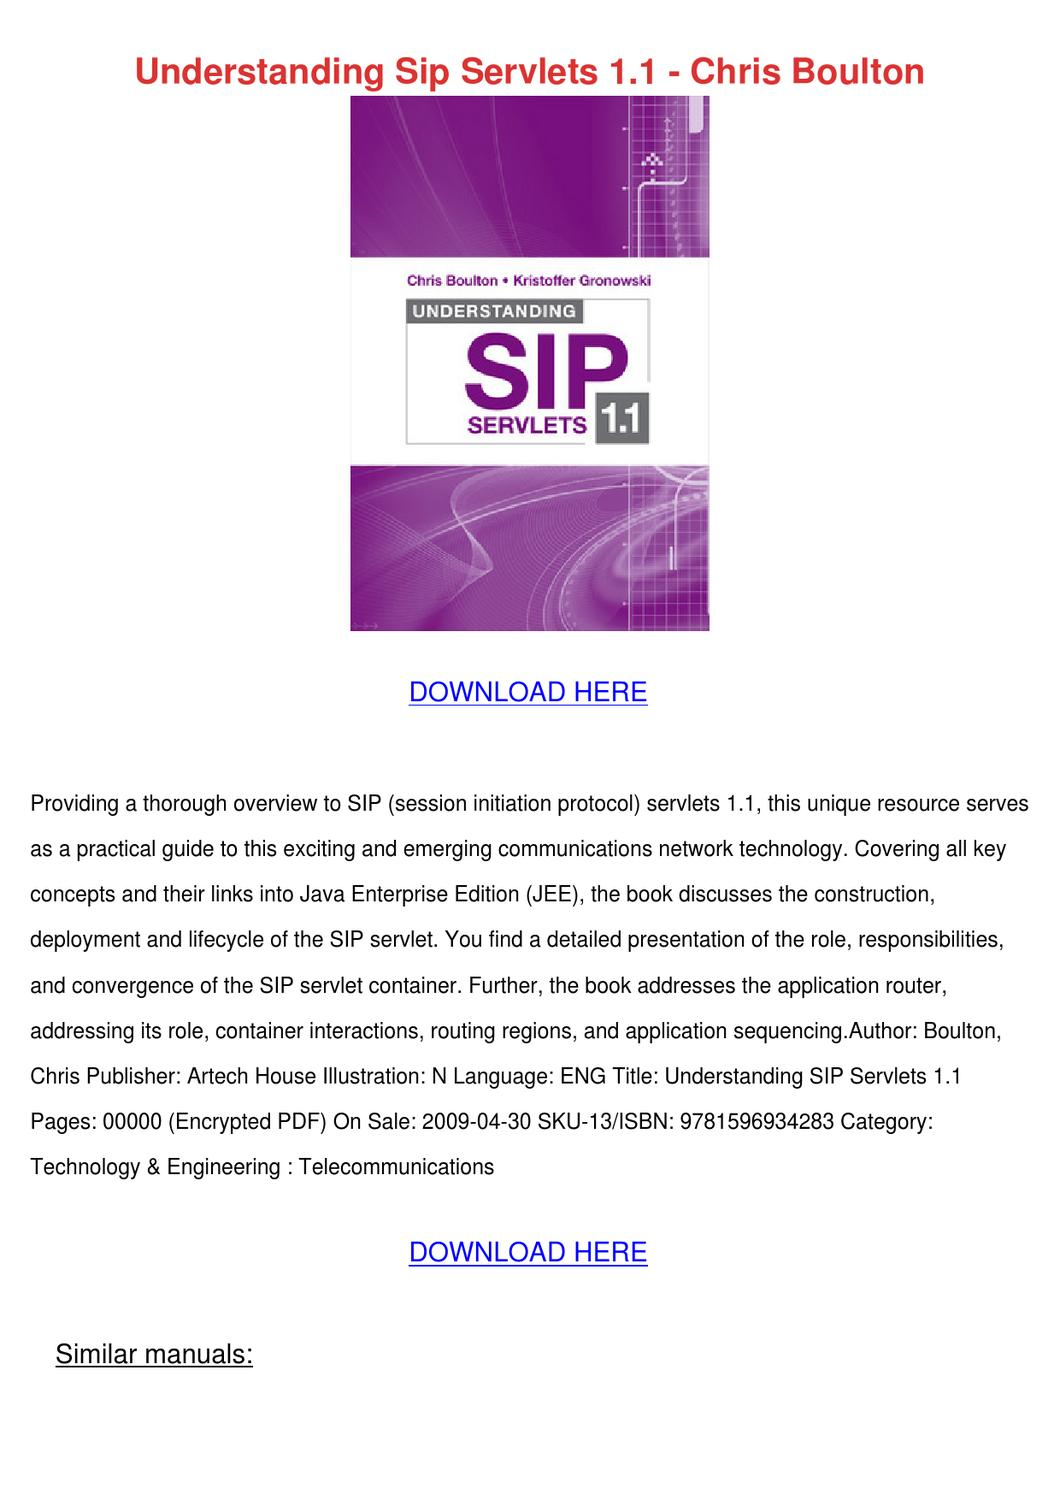 sip understanding the session initiation protocol fourth edition pdf download